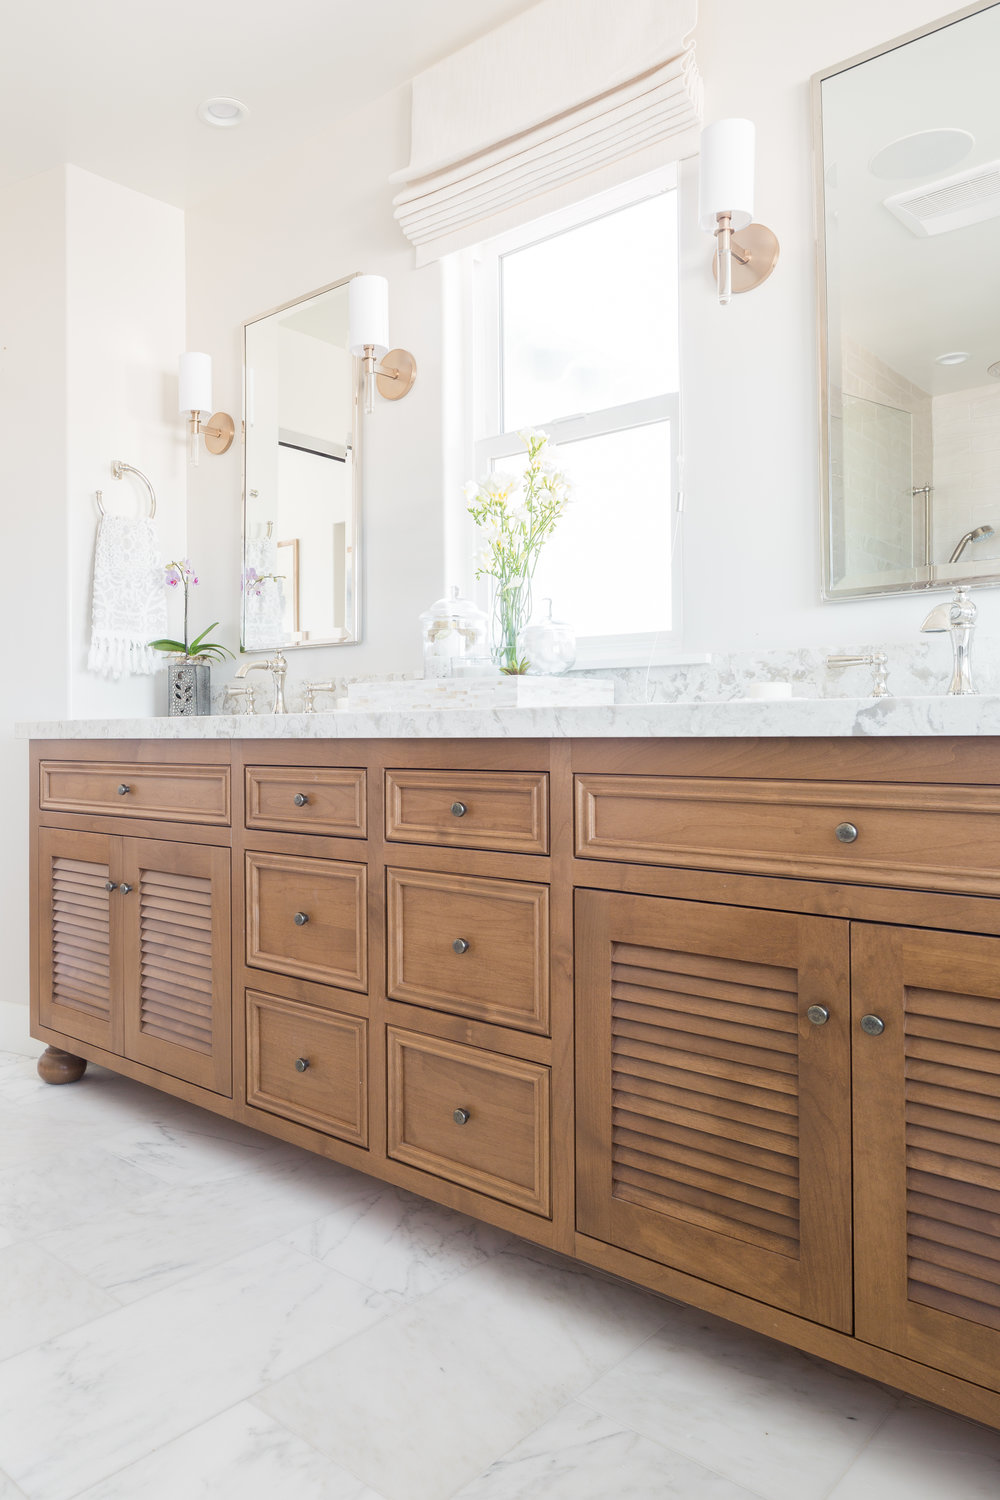 But there is a time and place for a beautiful inset face frame stained wood cabinet and this bathroom is both the time and the place